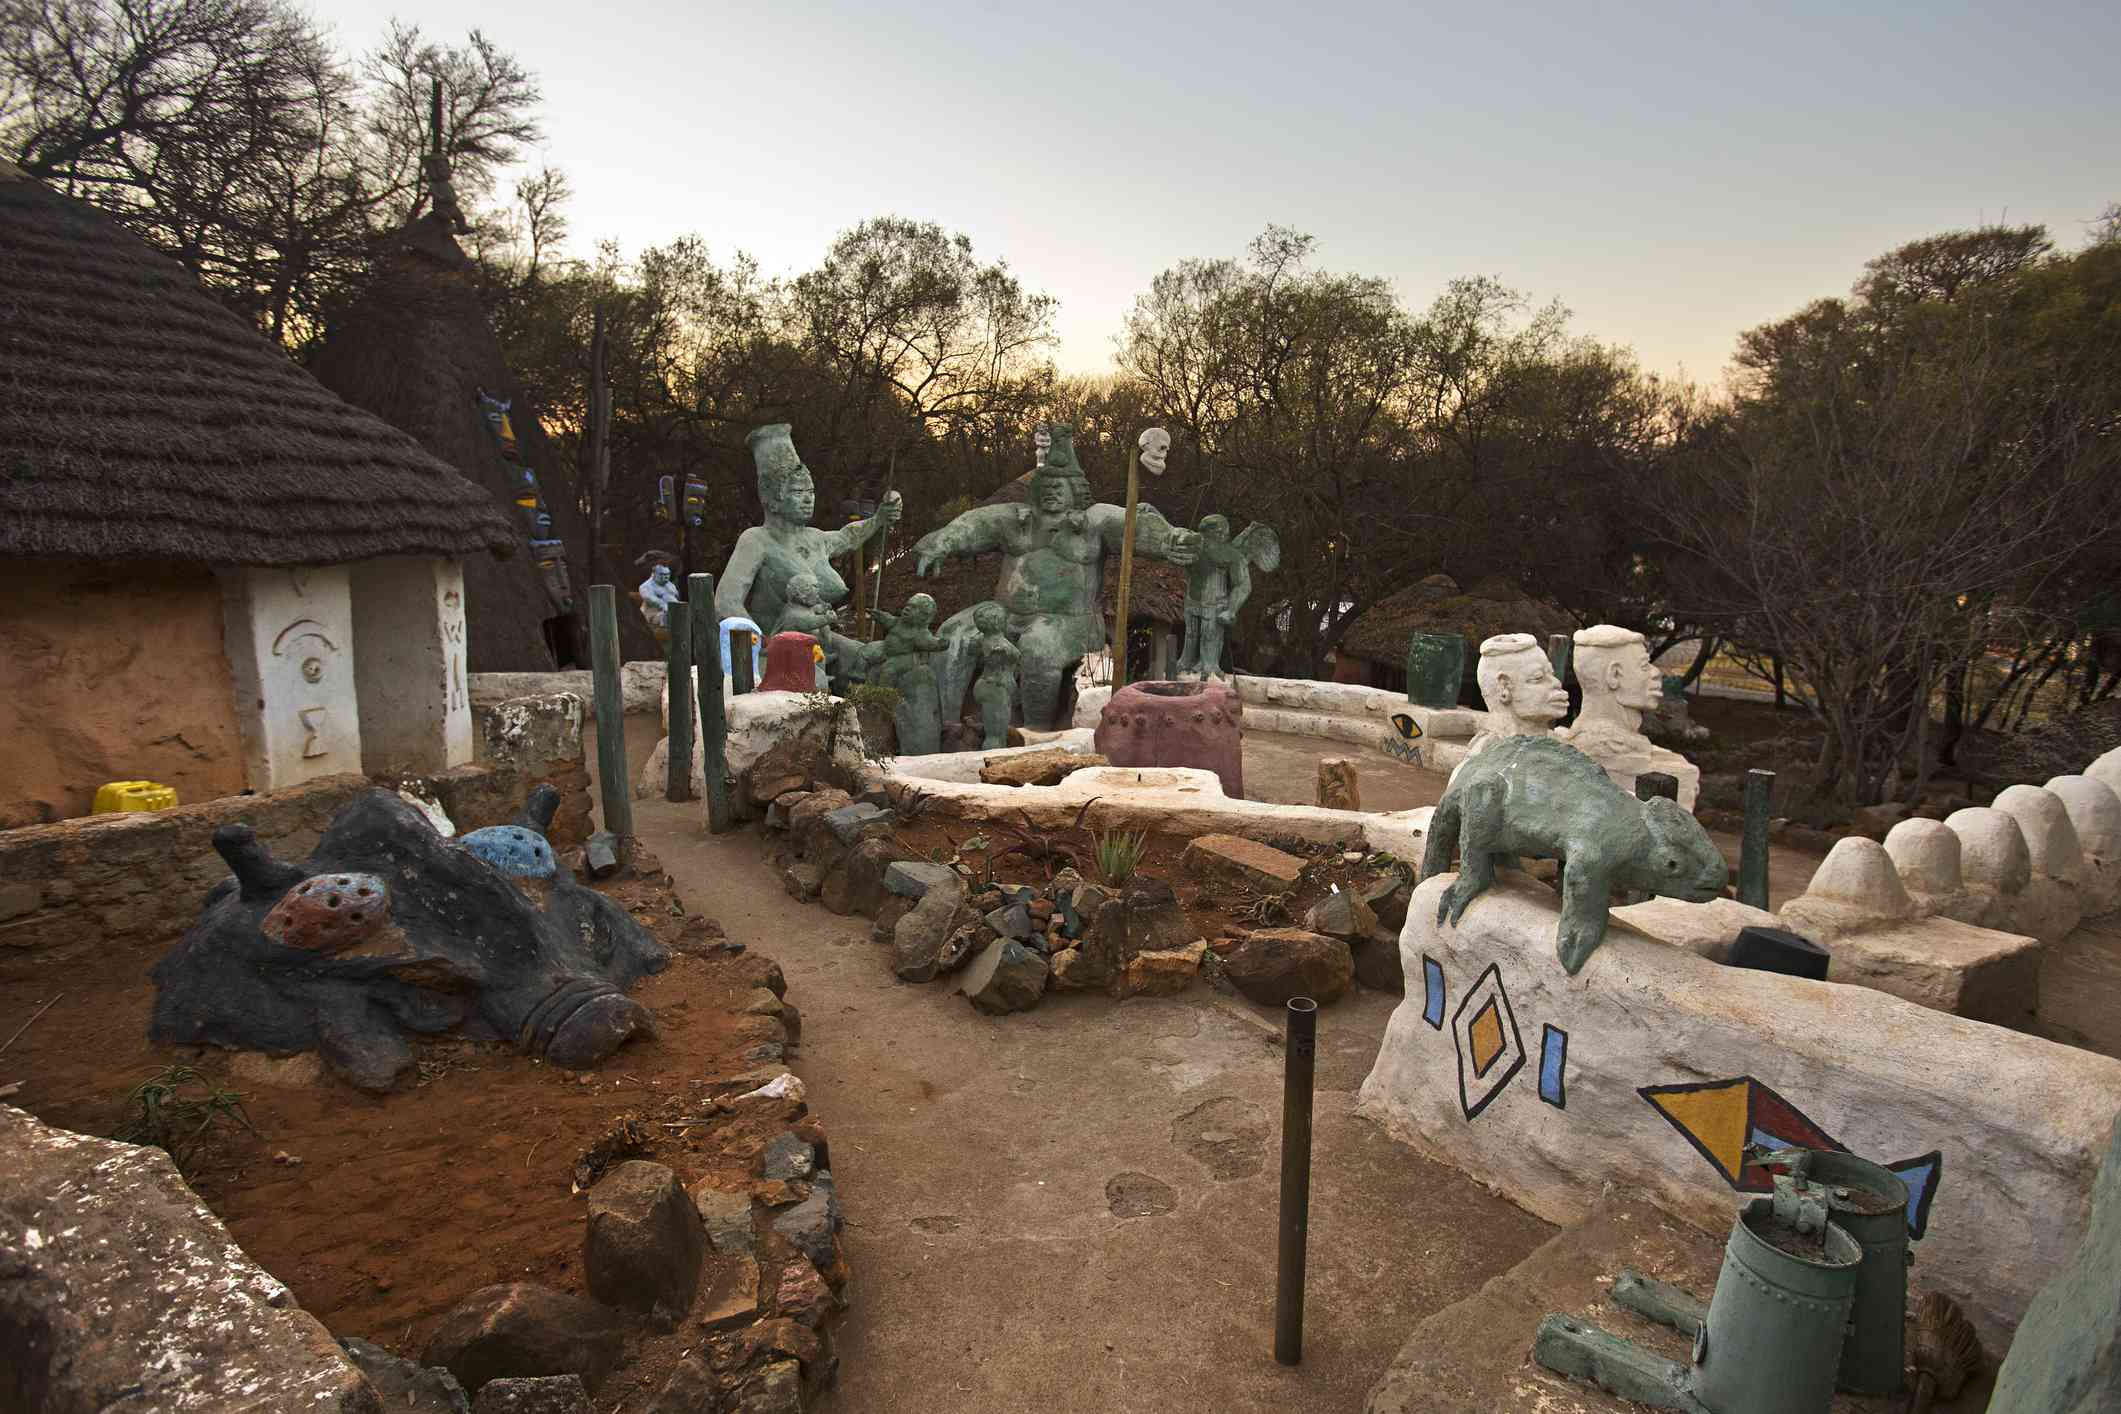 Sculptures in Credo Mutwa Cultural Village in Soweto at sunset